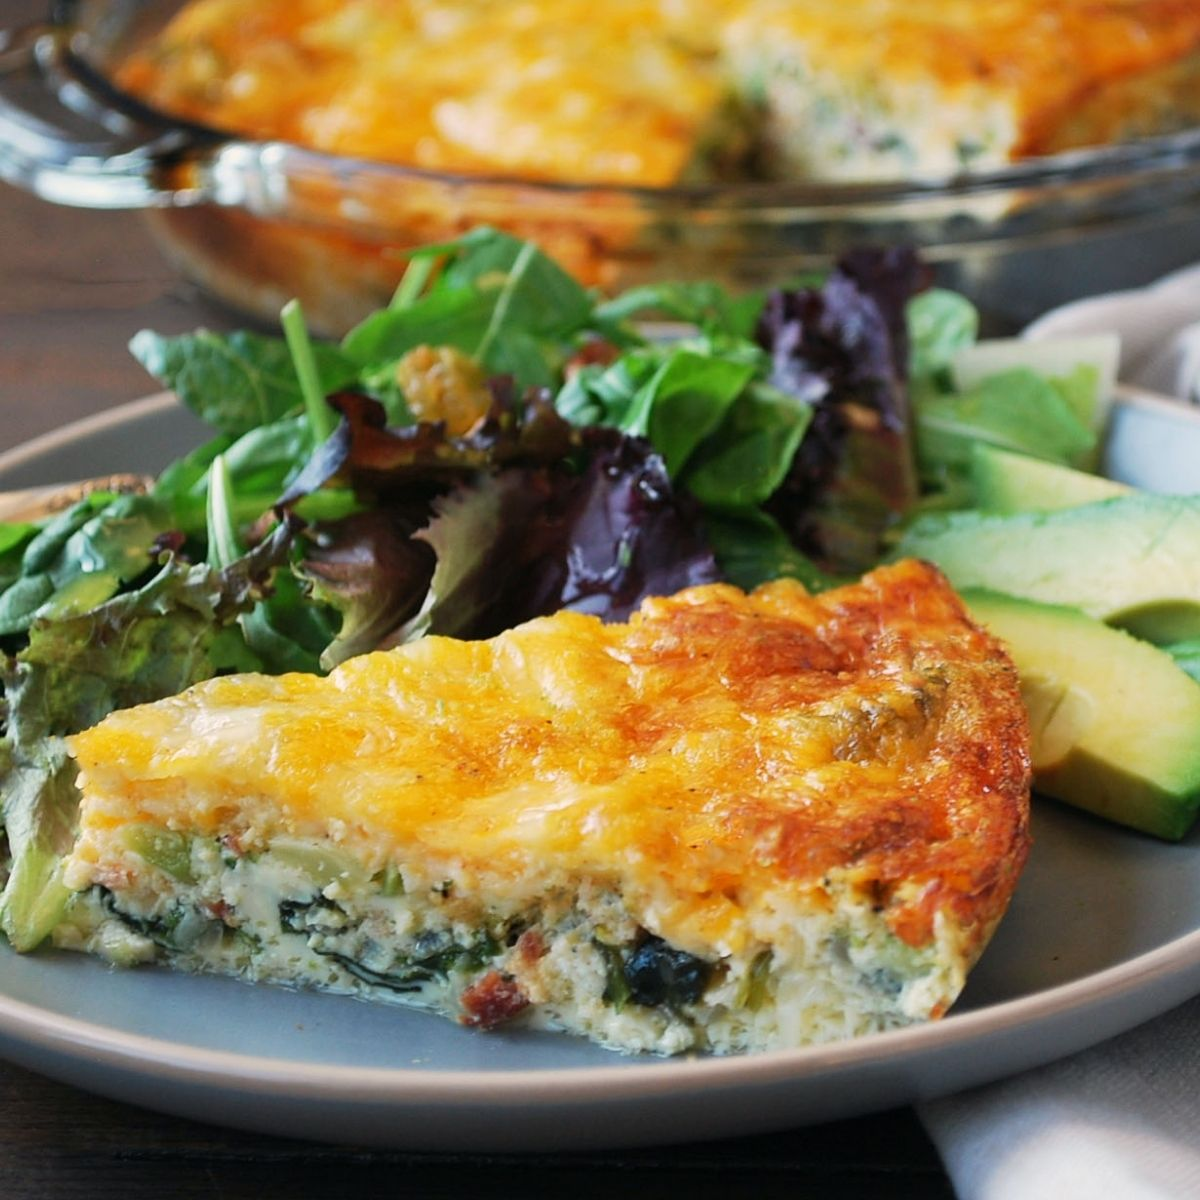 Low-Carb Loaded Crustless Quiche| Keto Recipe - Amee's Savory Dish